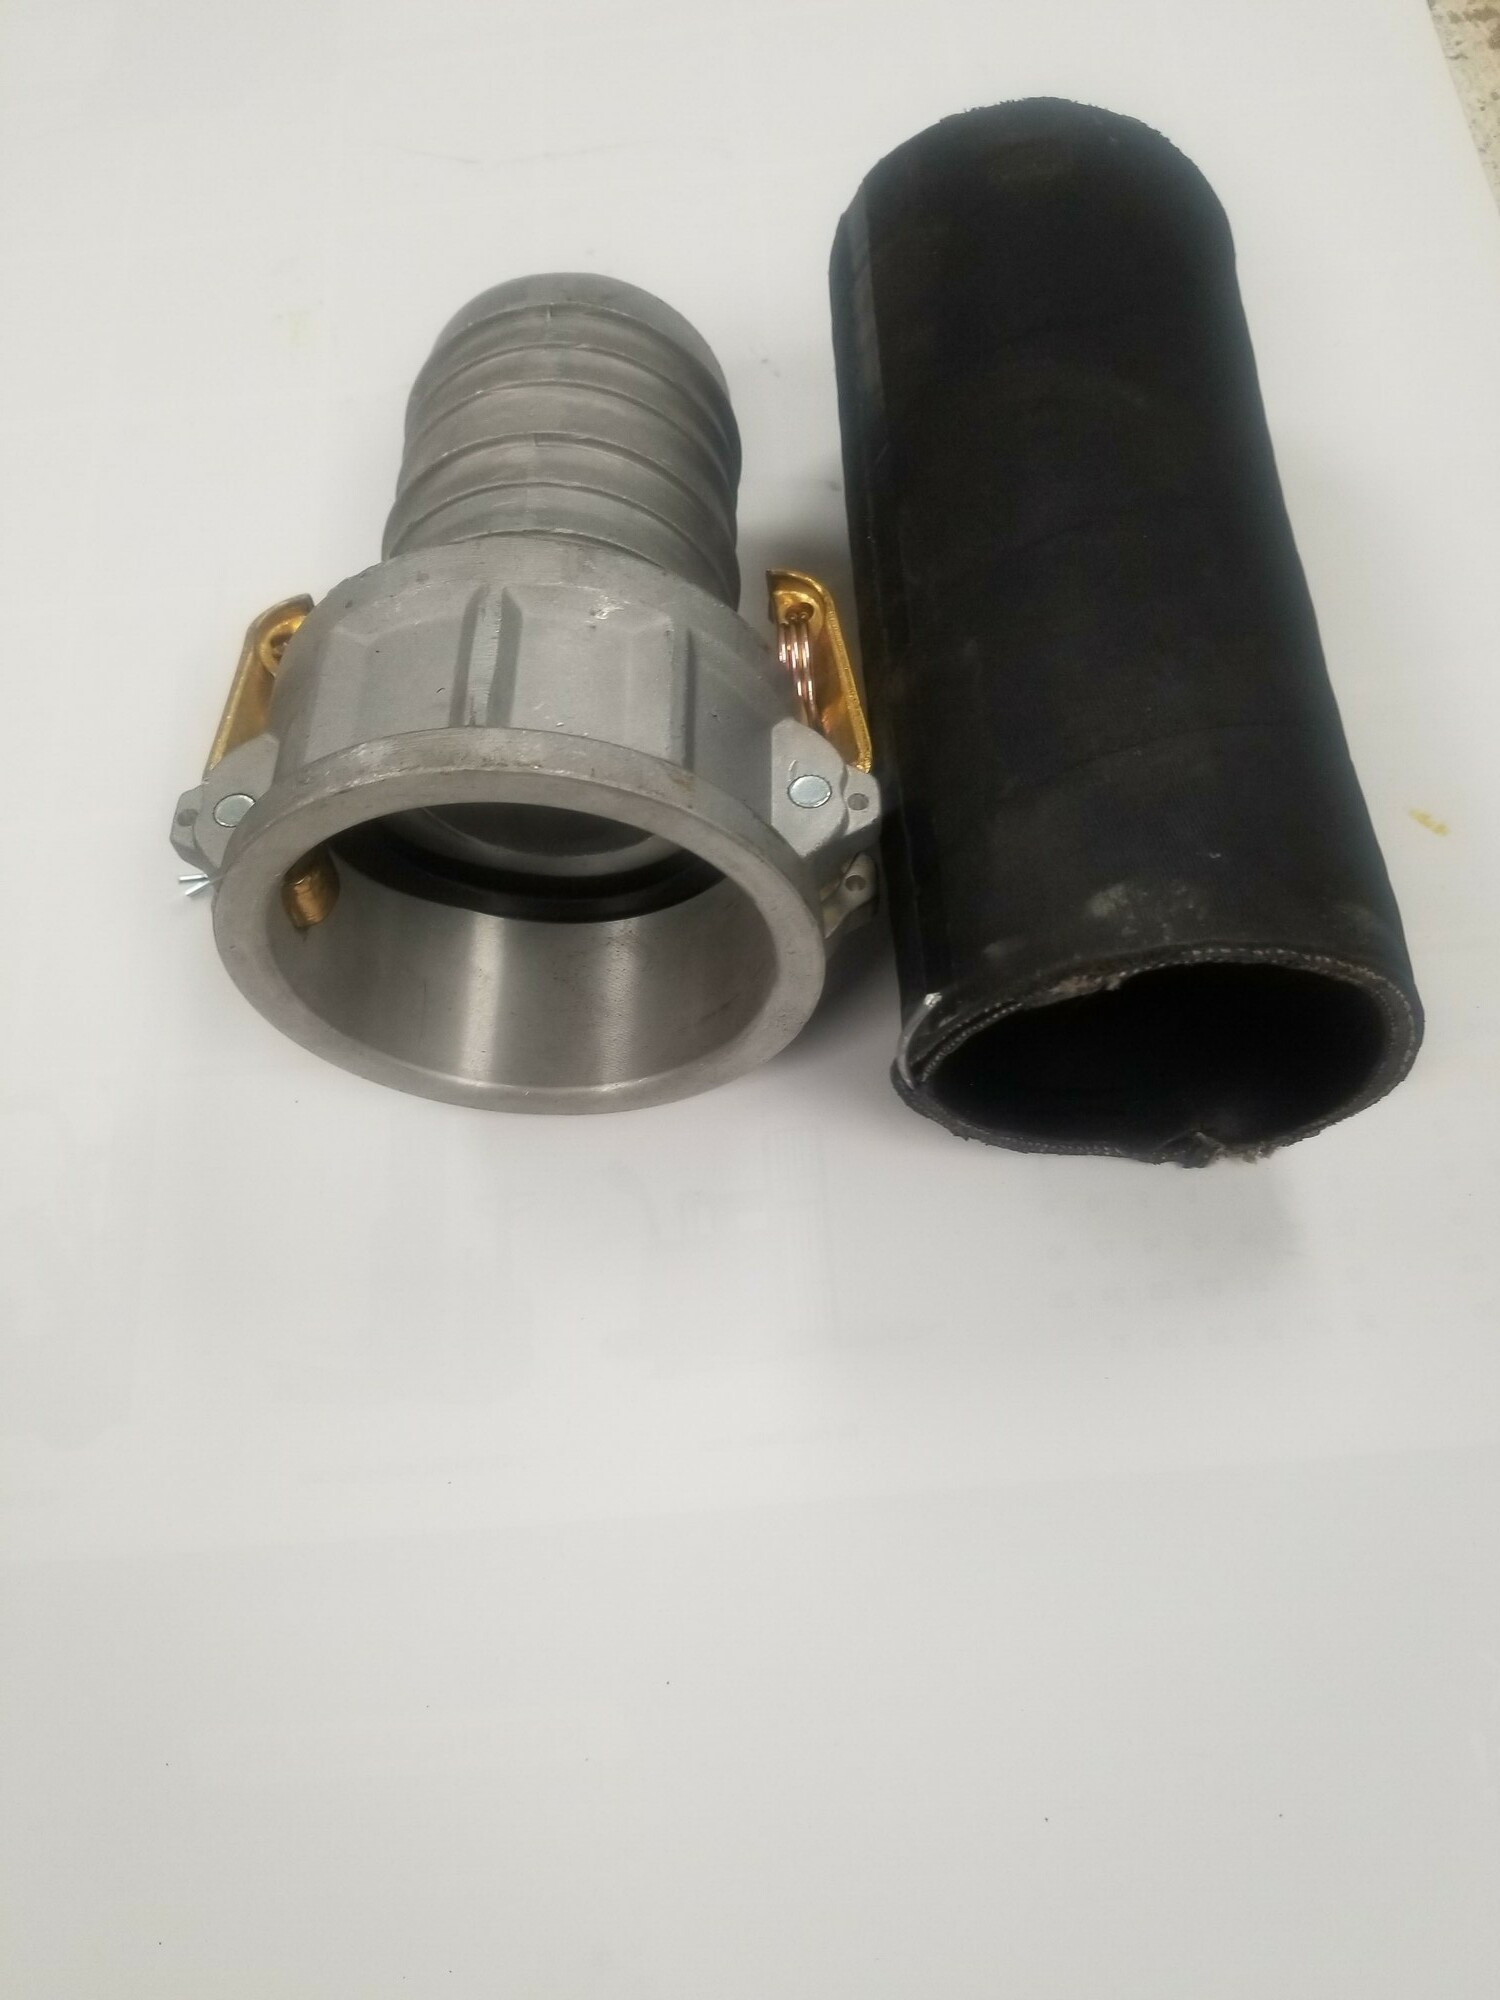 Canadian Pump Solutions hose attachments